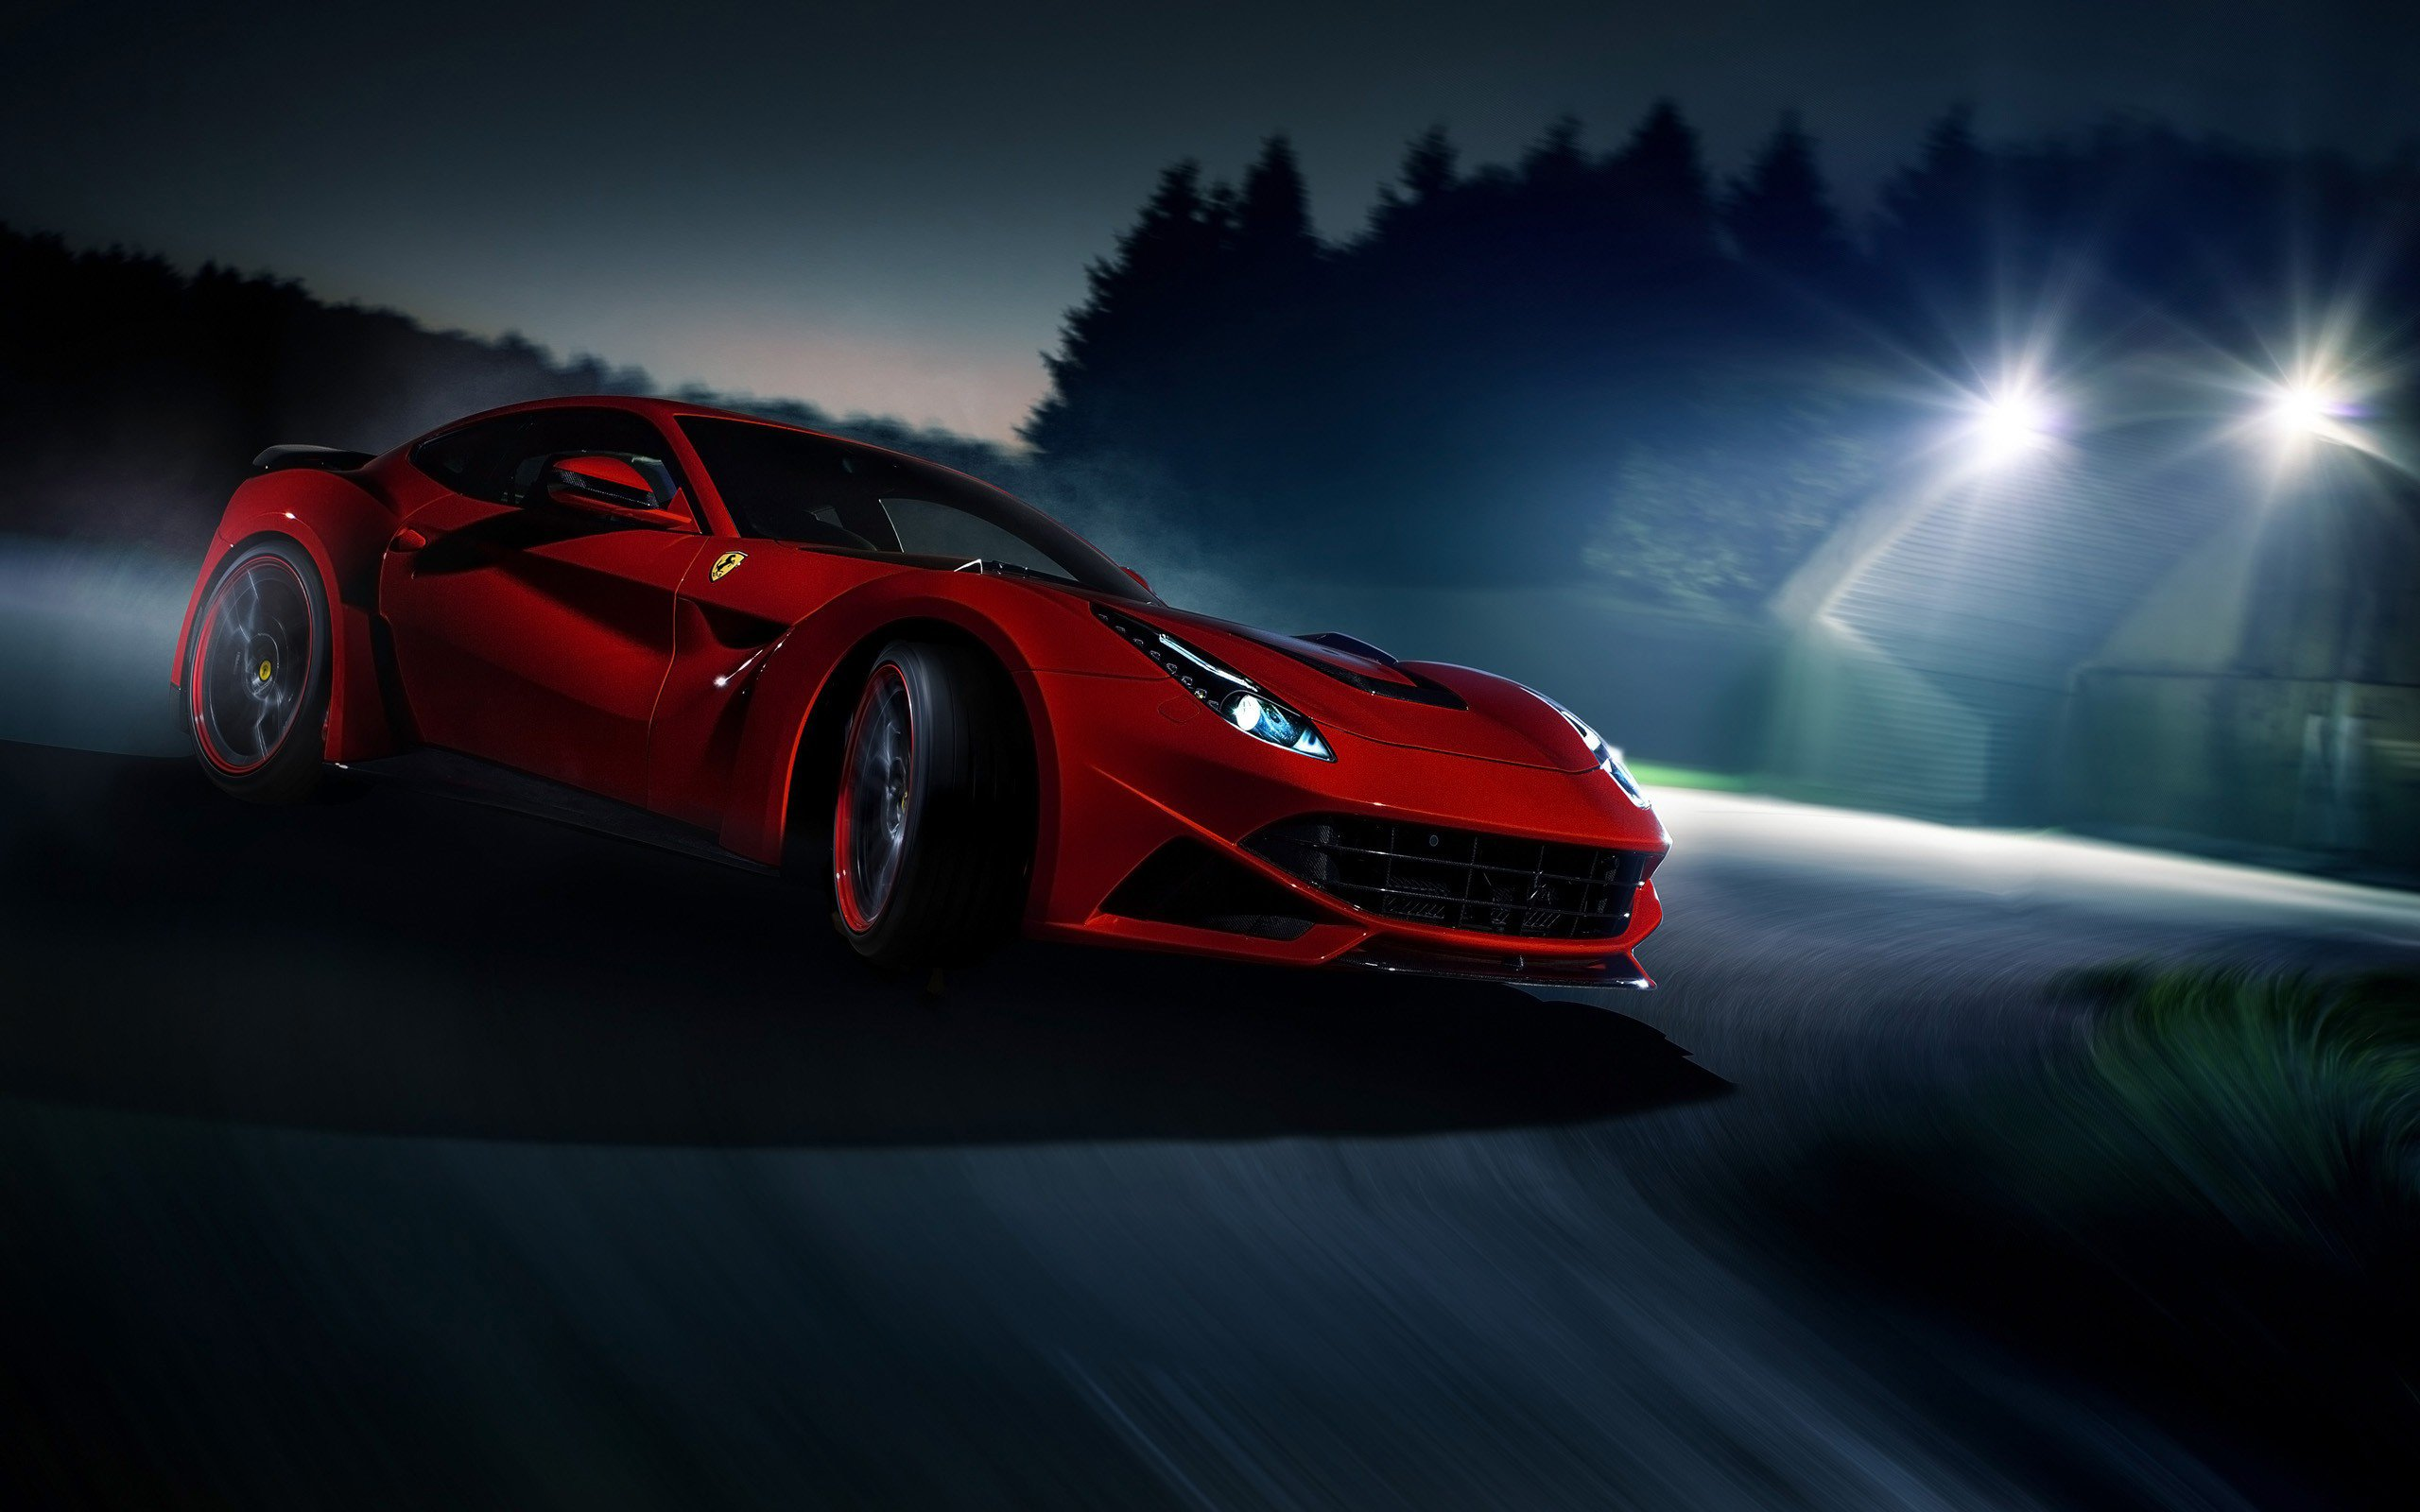 2013 Ferrari F12 Berlinetta Novitec Wallpaper | HD Car Wallpapers